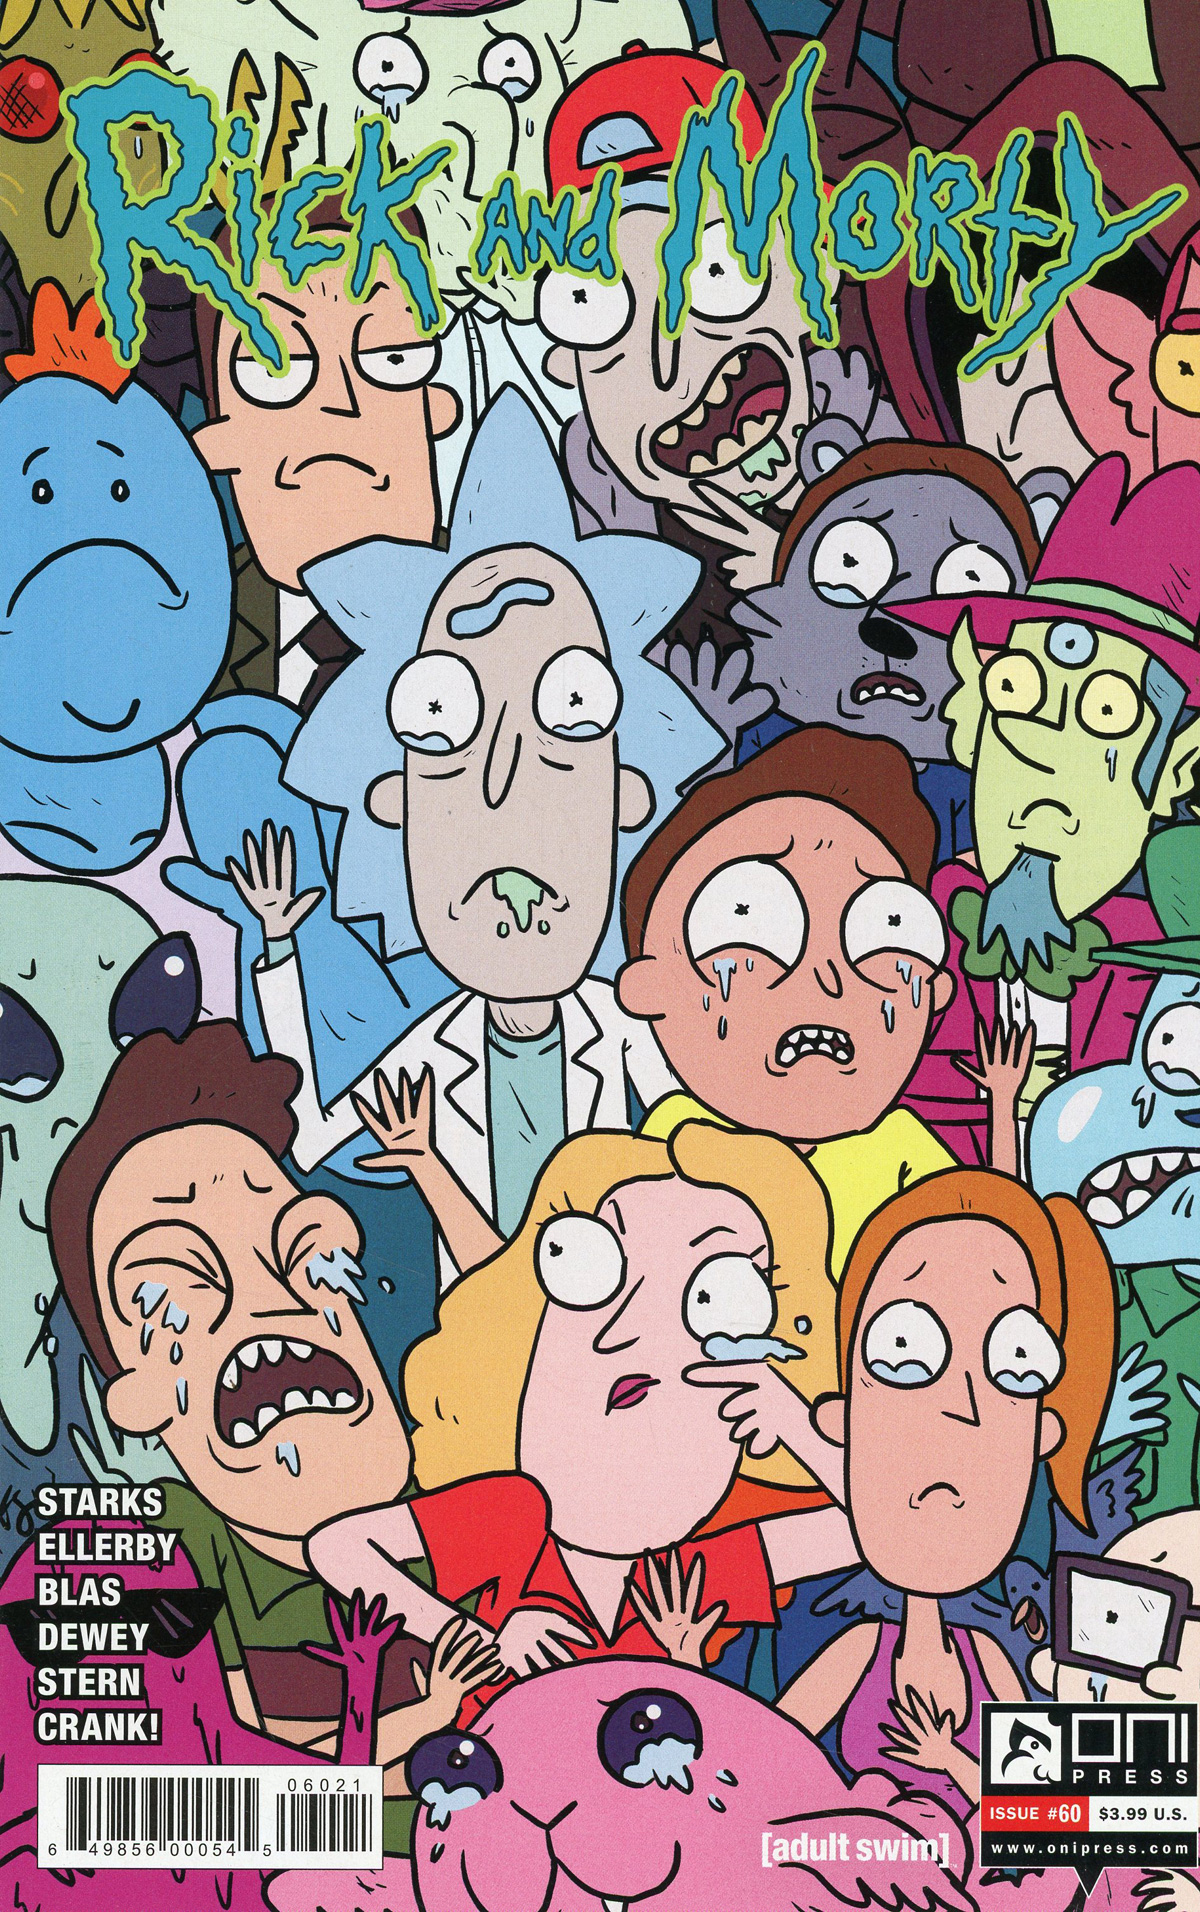 Rick And Morty #60 Cover B Variant Kyle Starks & Sarah Stern Cover